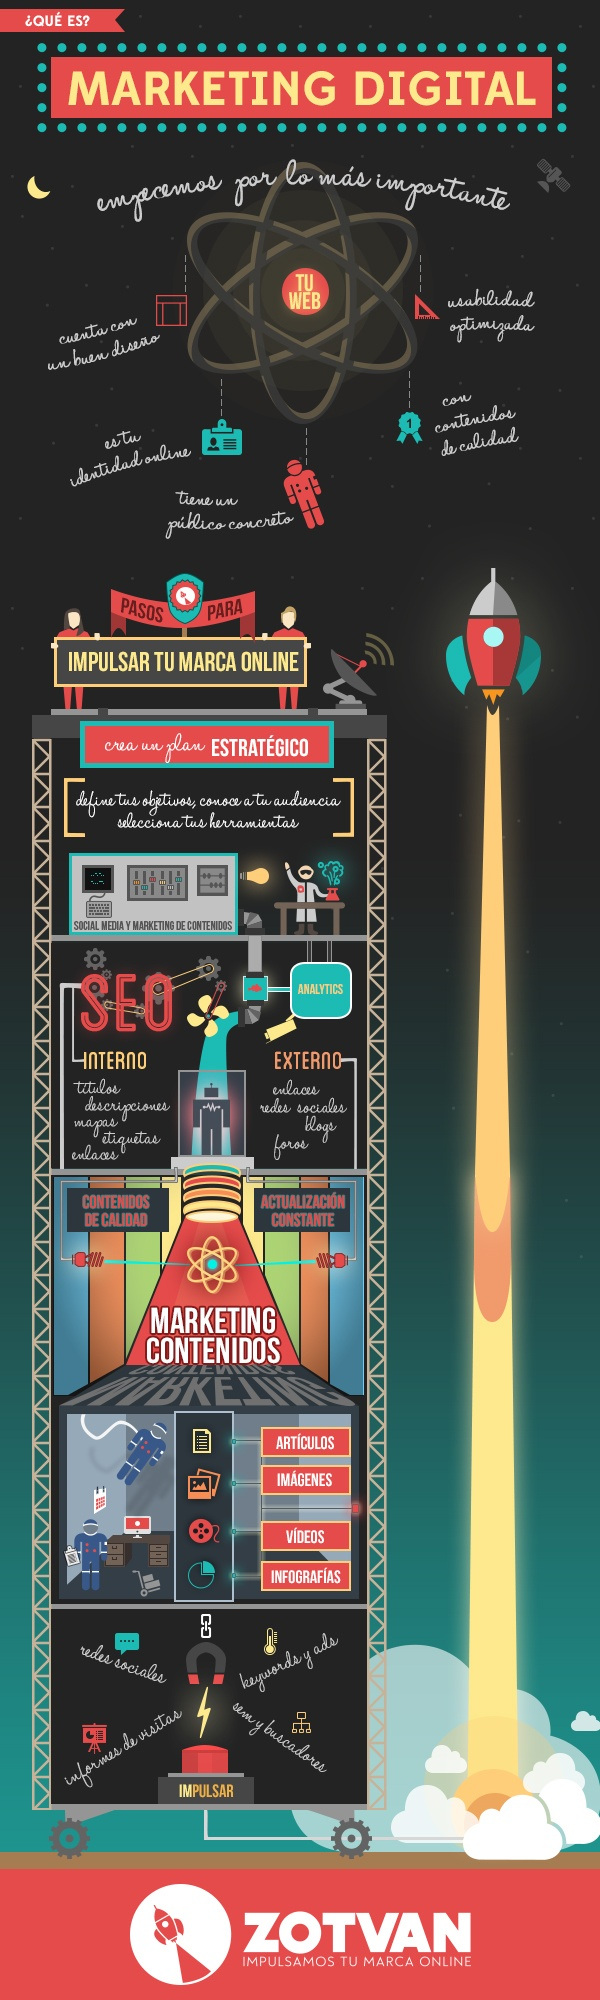 Qué es marketing digital